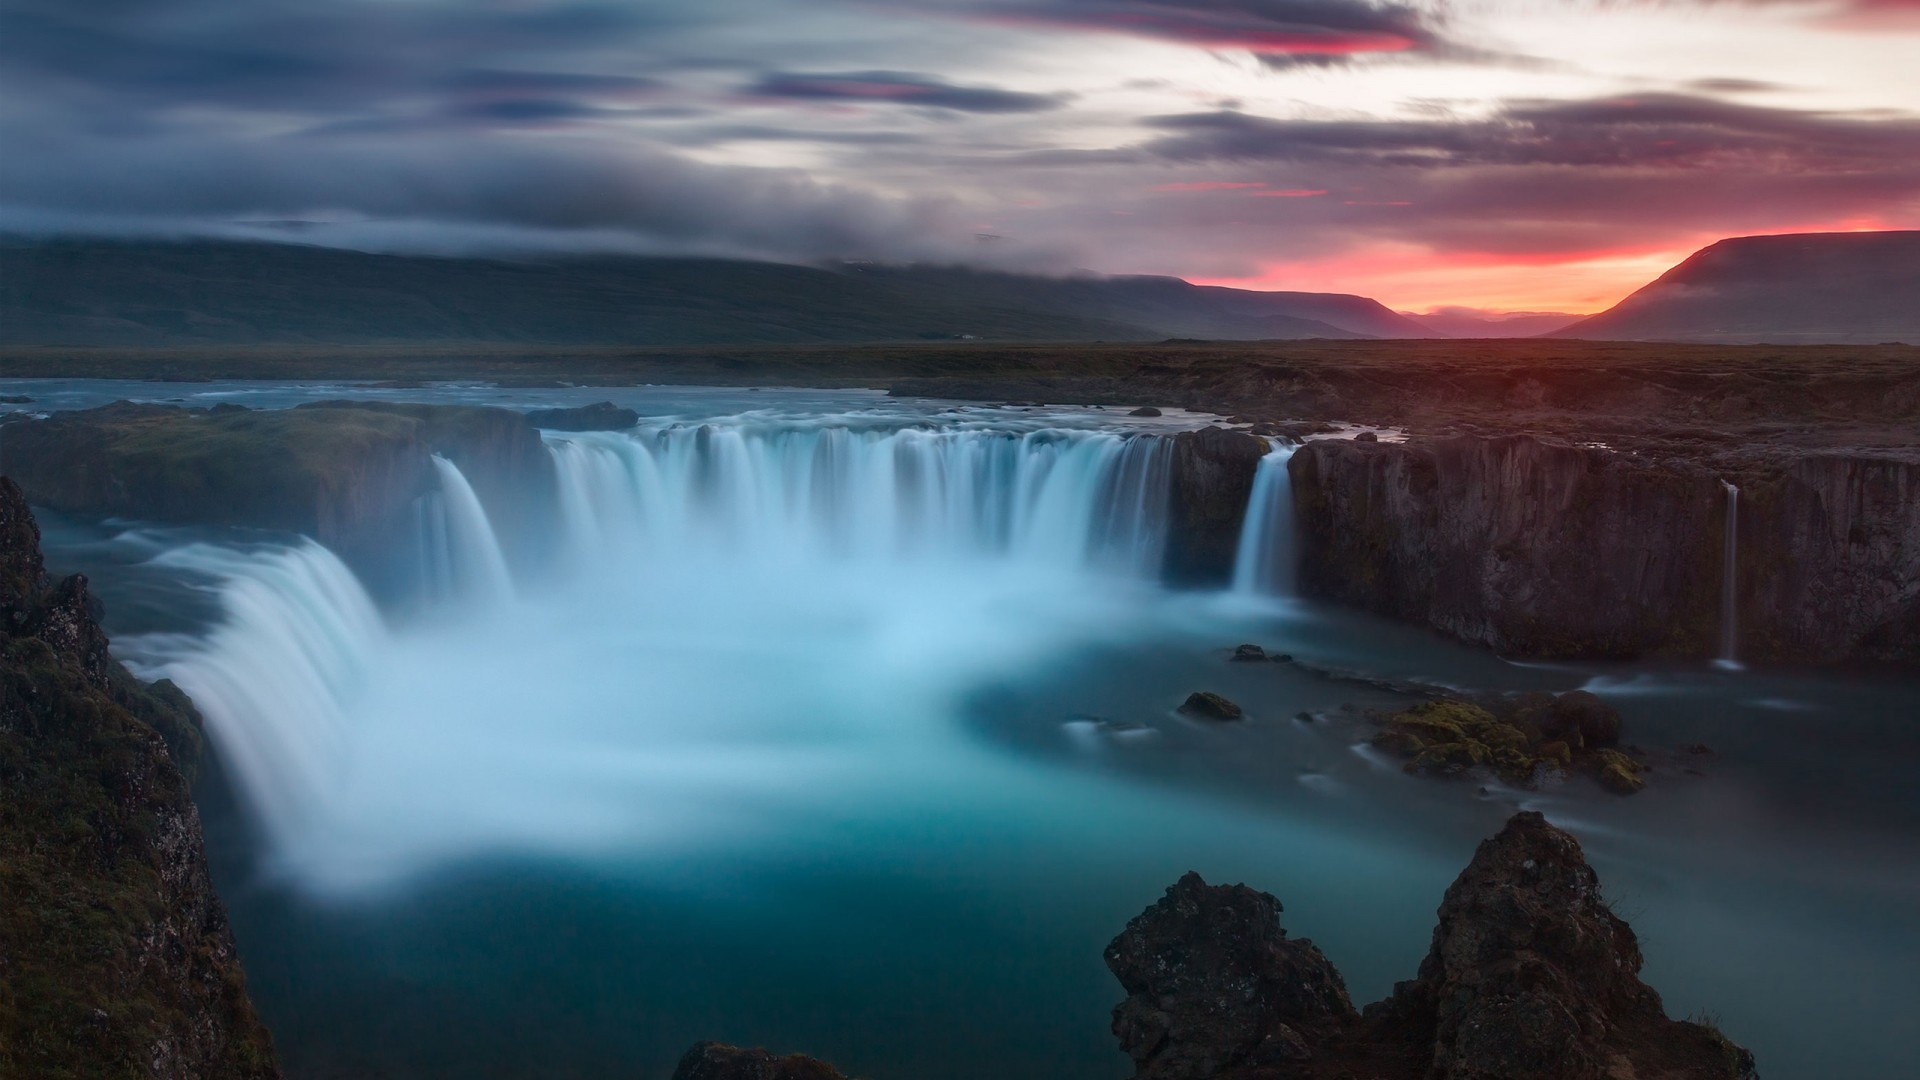 Cool 3d Ipad Wallpapers Godafoss Waterfalls Iceland Wallpapers Hd Wallpapers